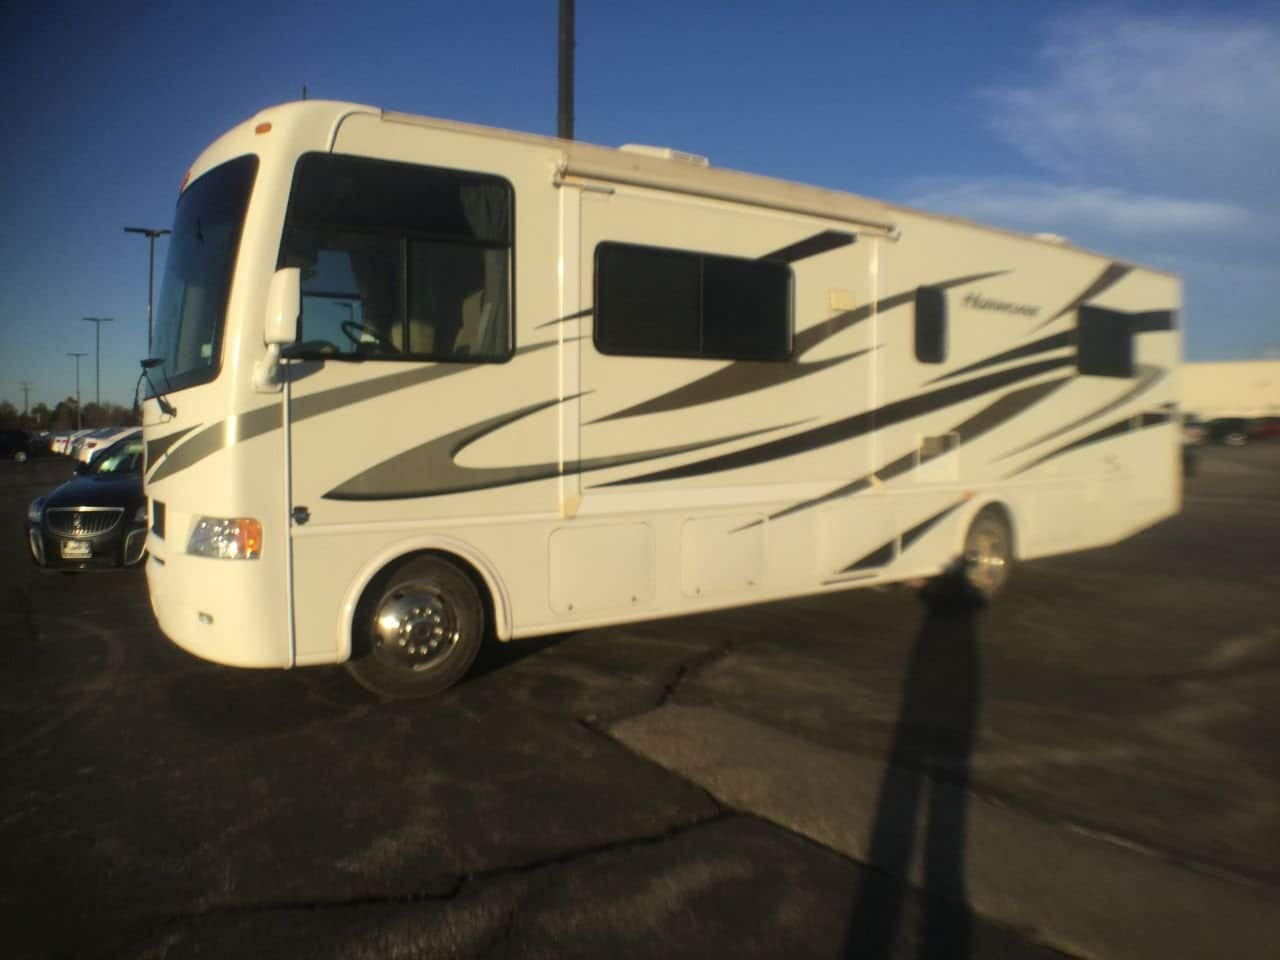 2011 Ford F-53 Motorhome Chassis Truck